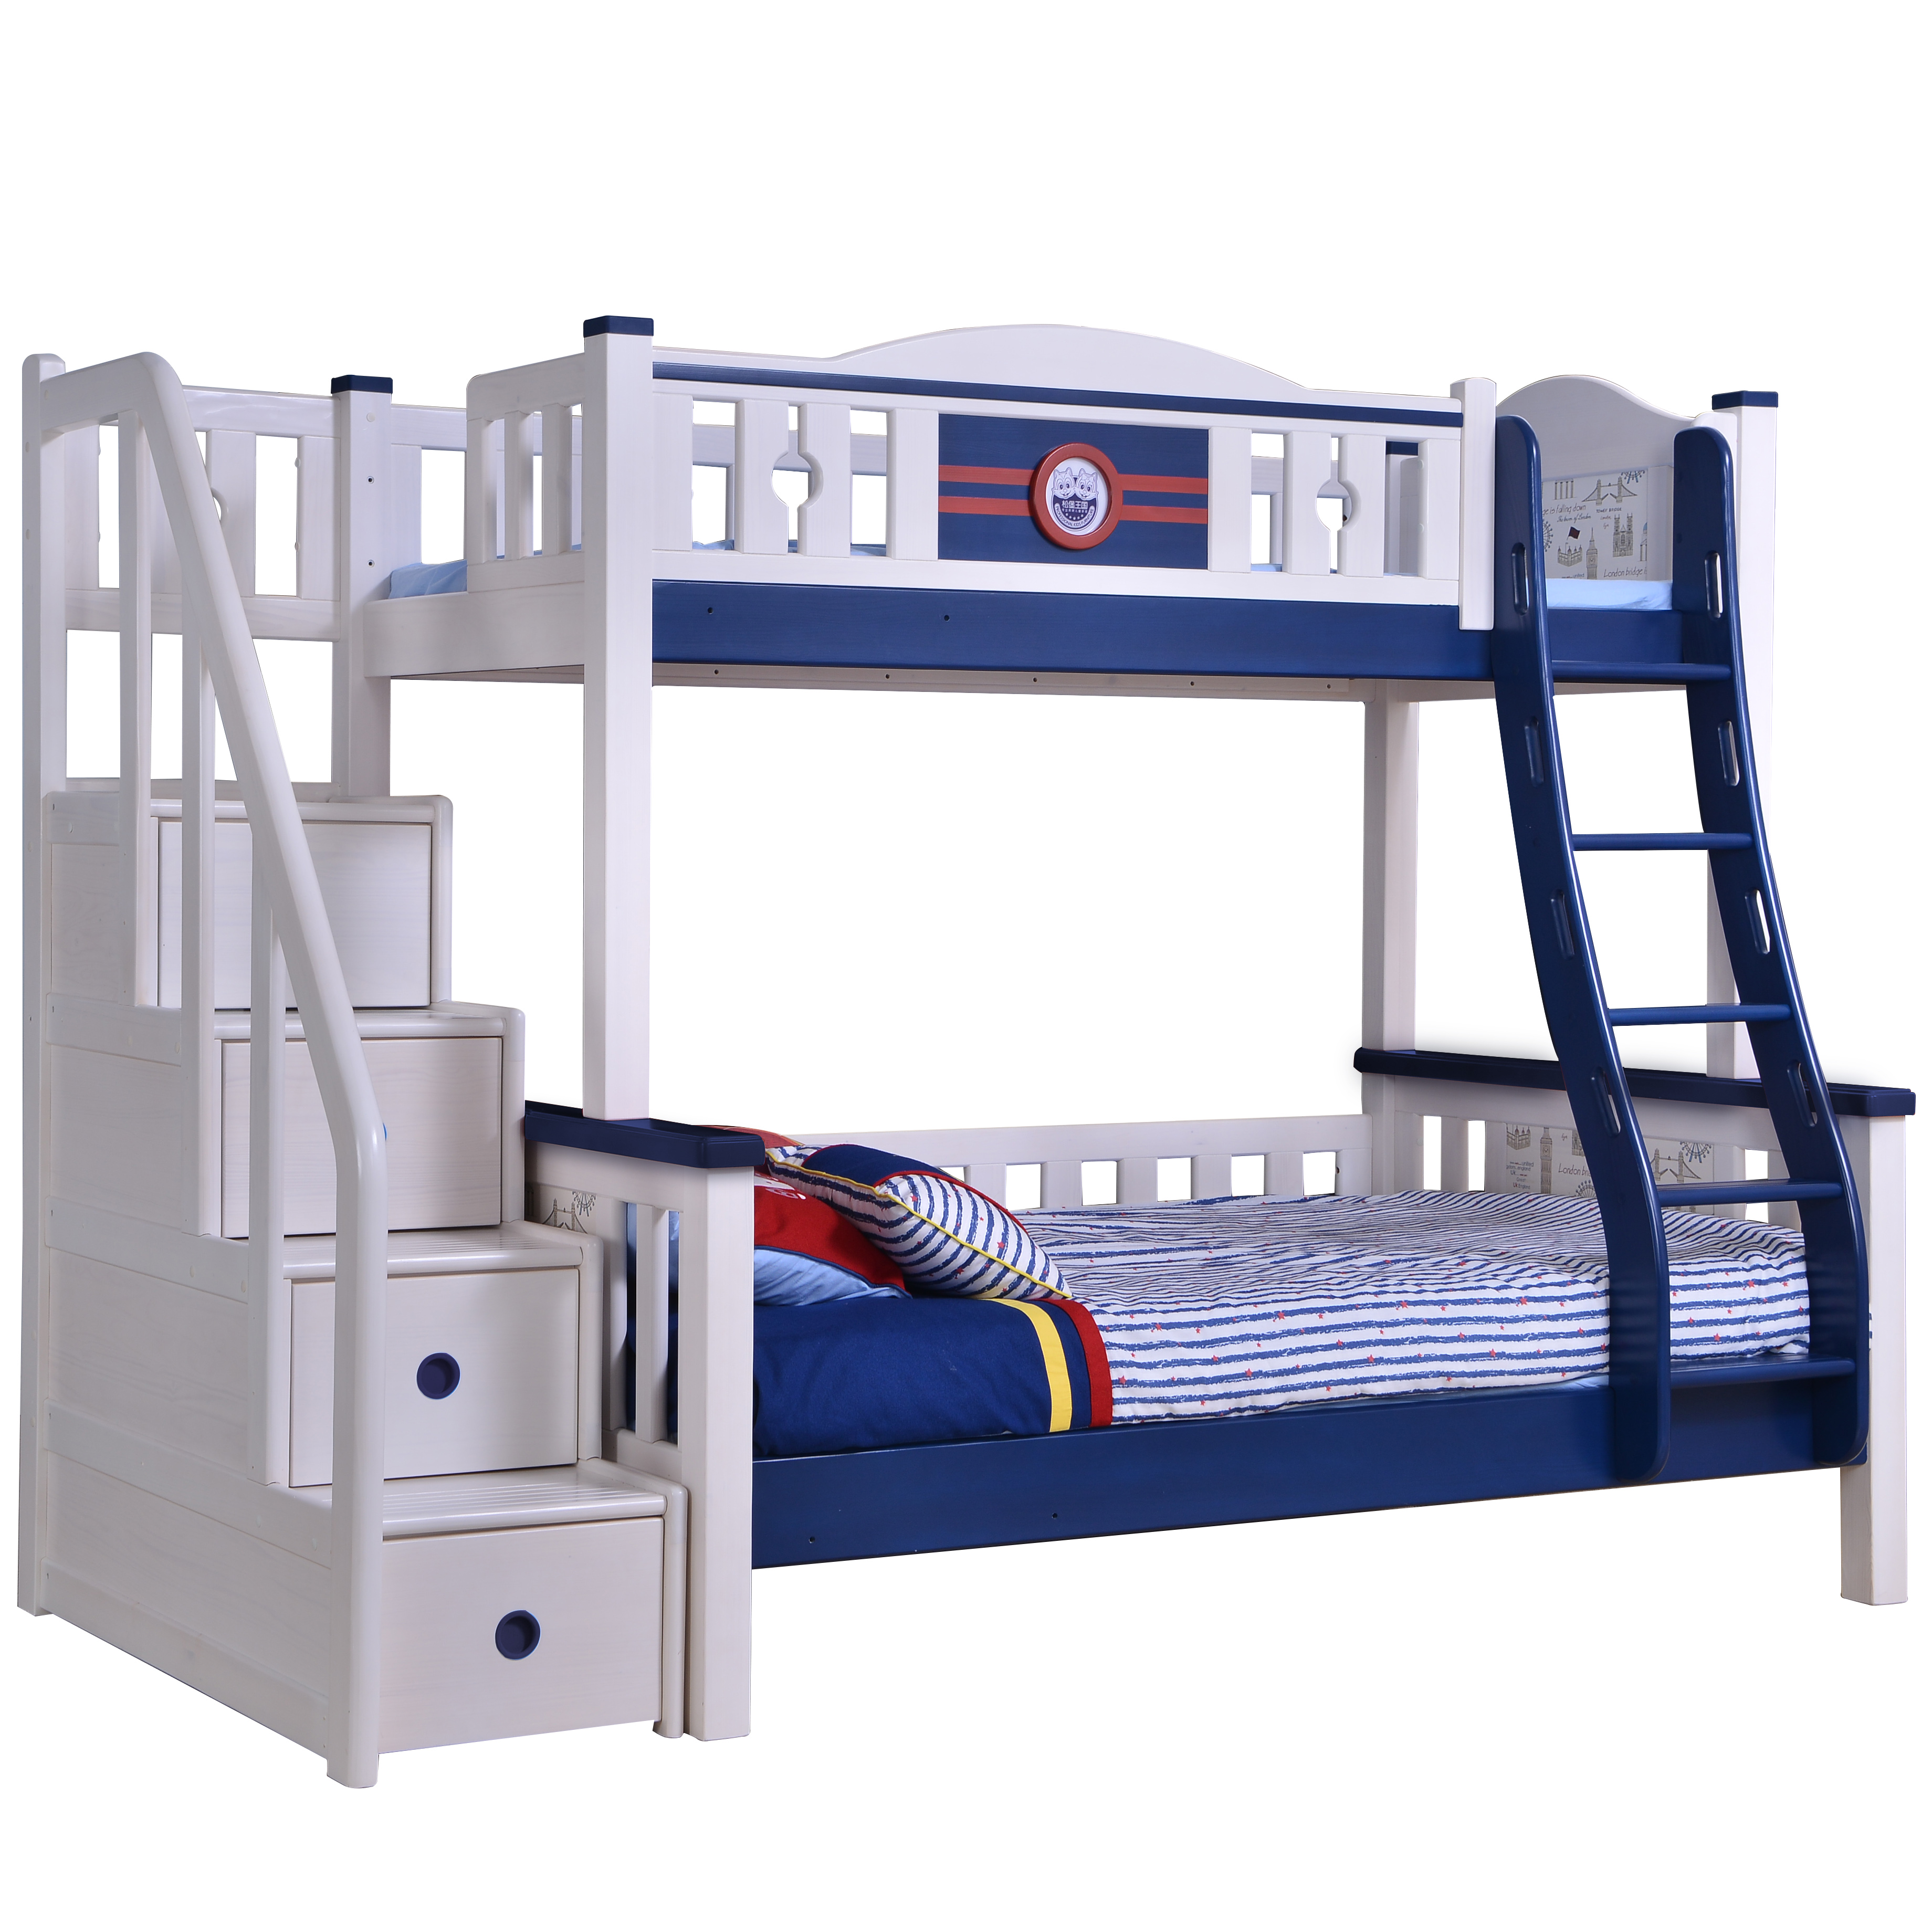 Picture of: Twin Size Loft Kids Wooden Bunk Bed For Boys Full Size Bed Queen Size Captains Bed Buy Twin Double Deck Bed Kids Furniture Cheap Bunk Beds Wooden Kid Double Deck Bed Product On